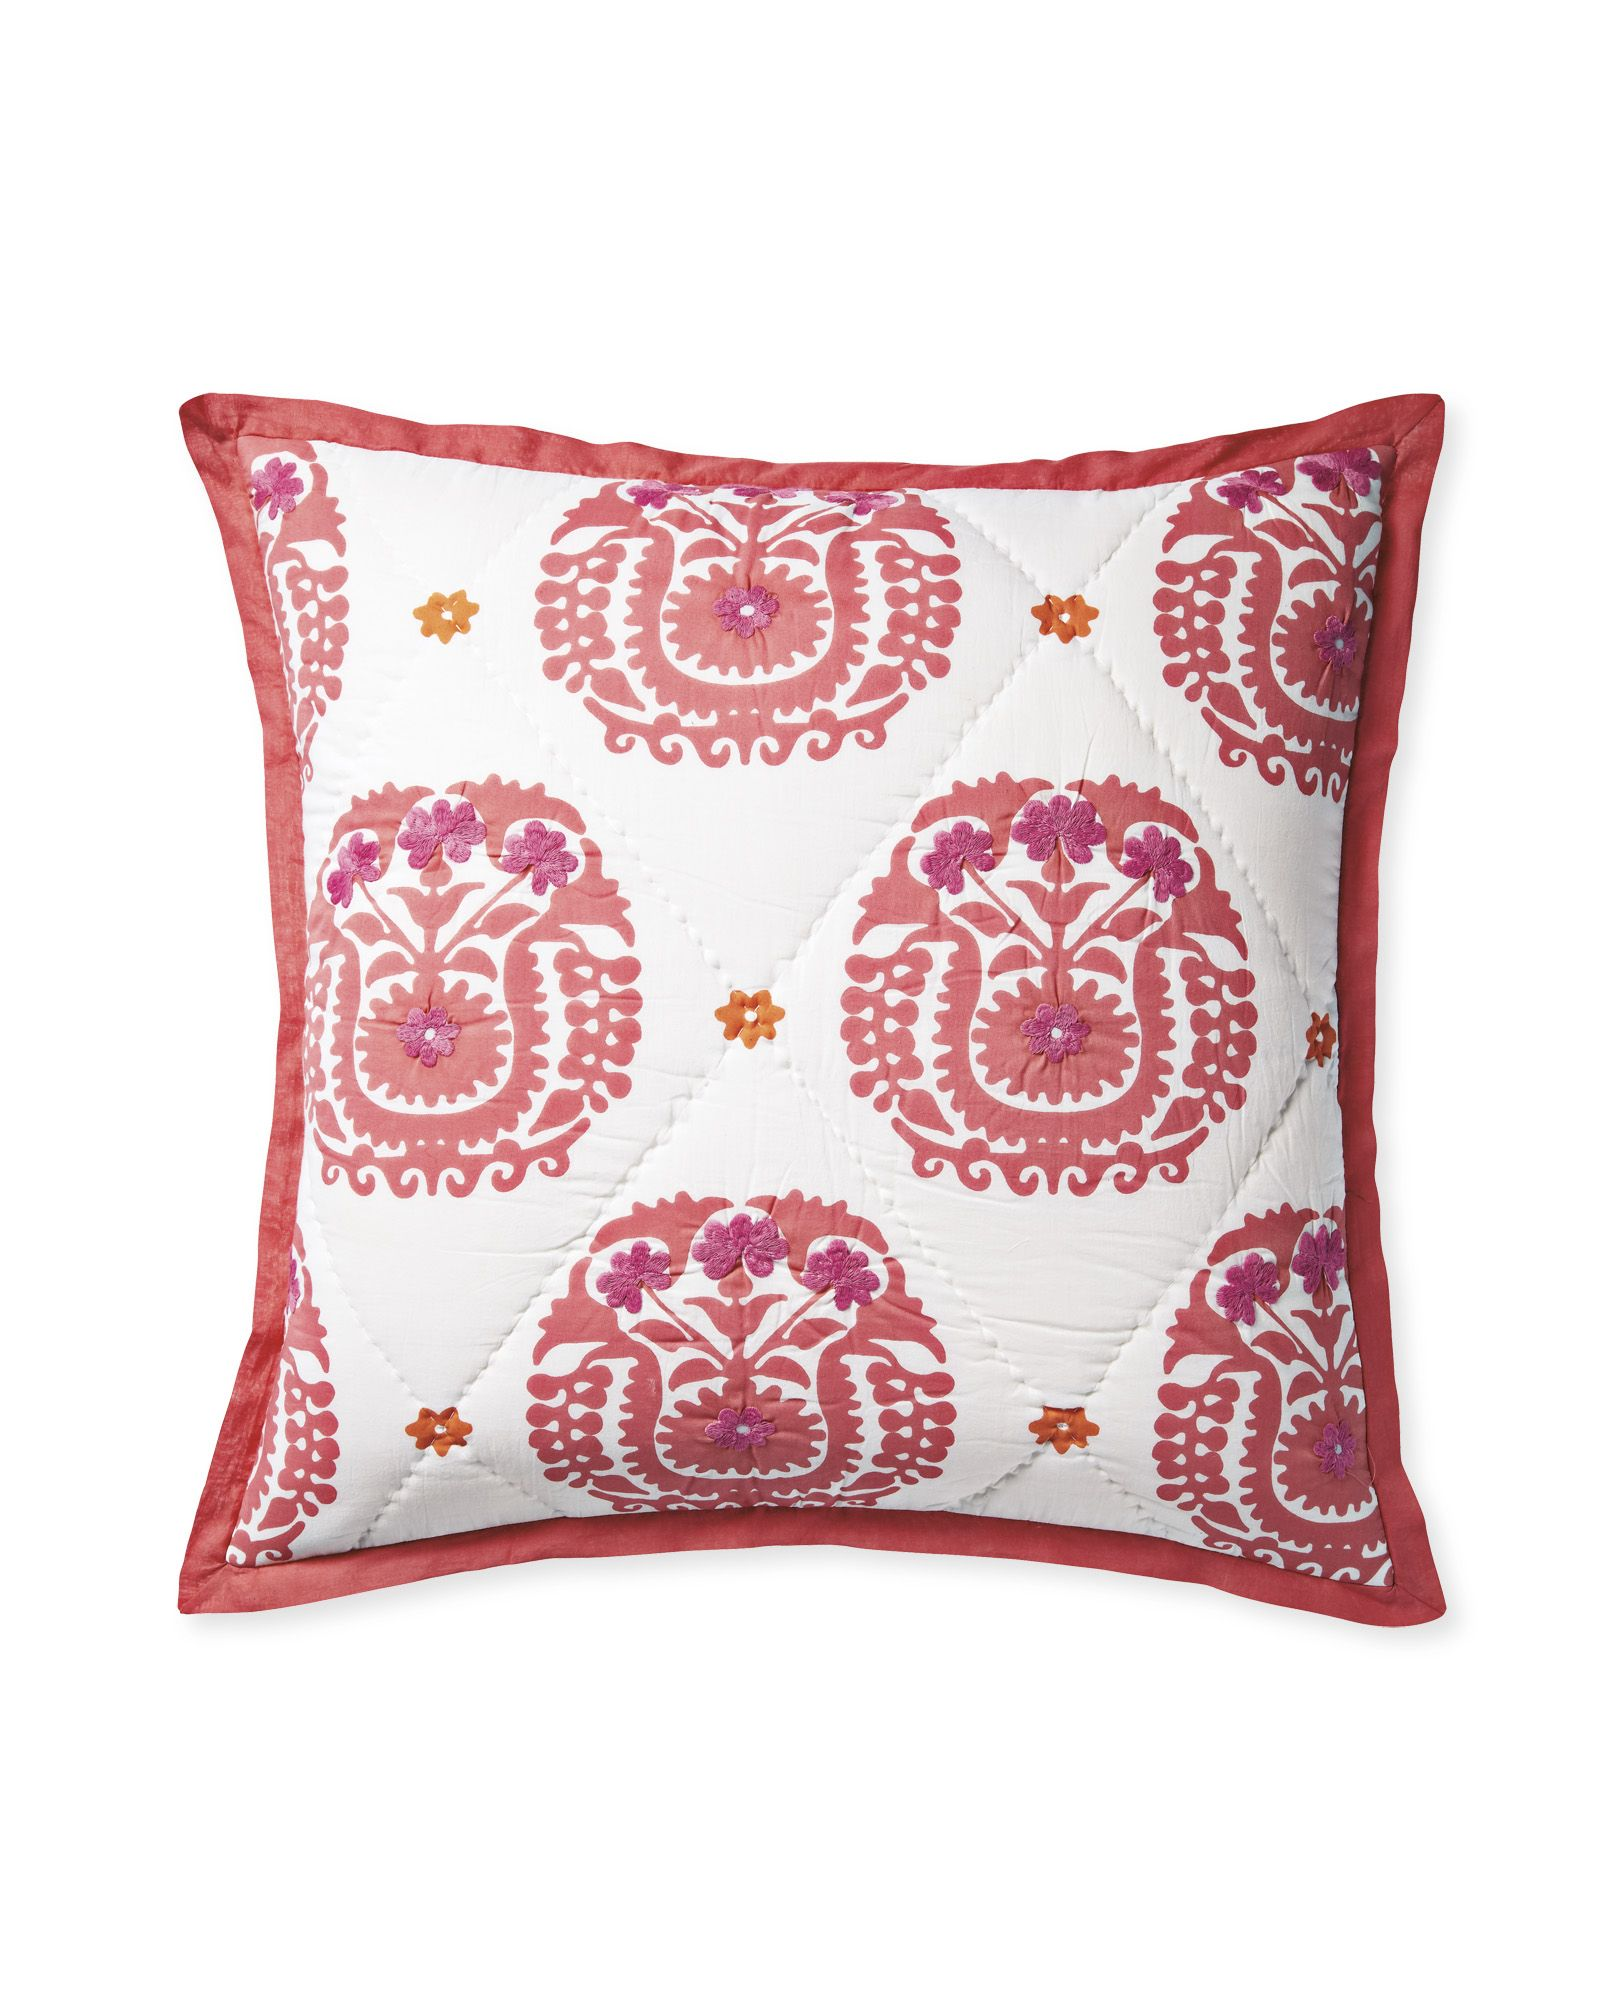 Based on the gorgeous designs of suzanis u decorative textiles that